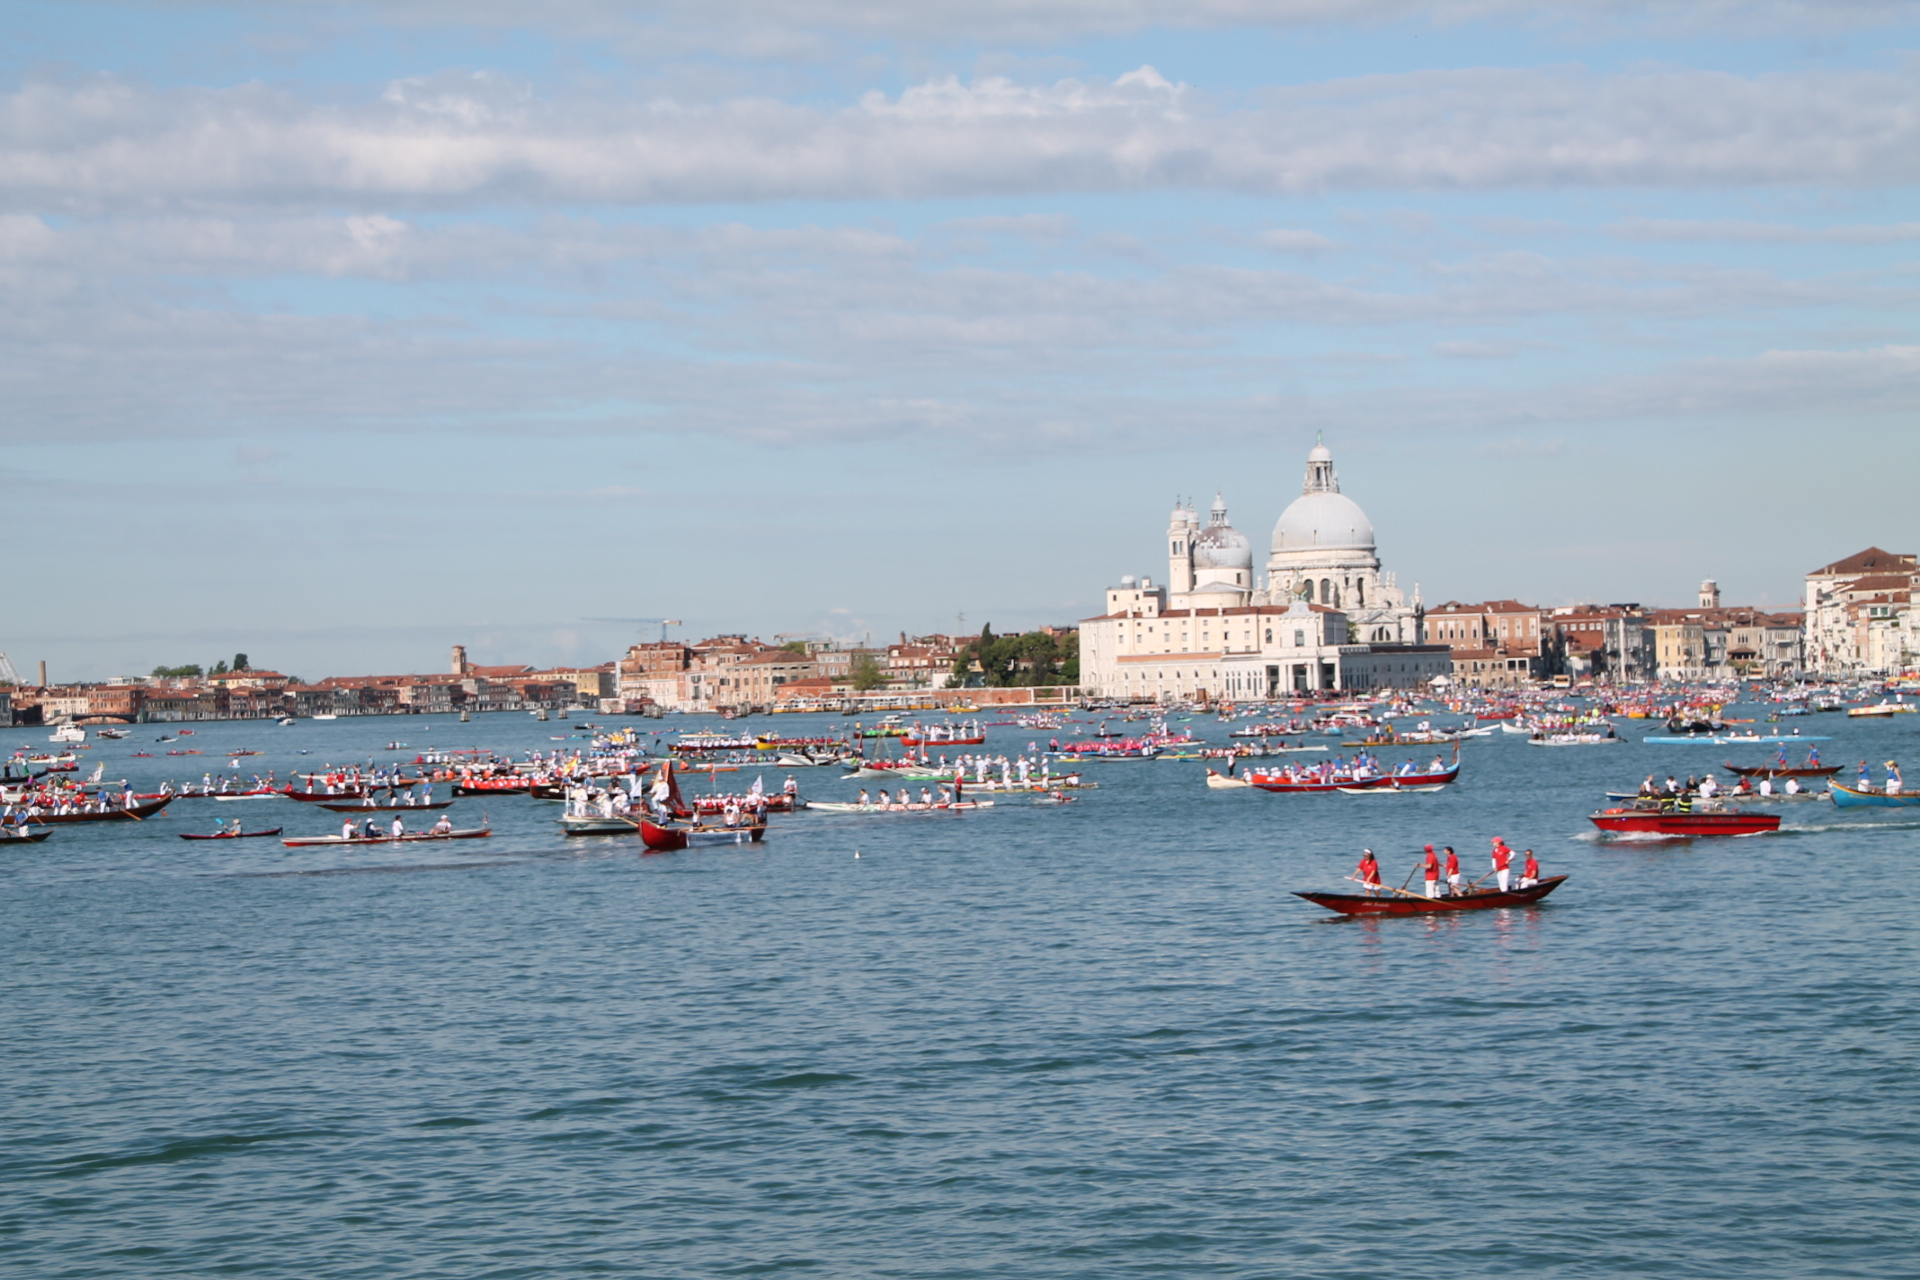 rowing in venice